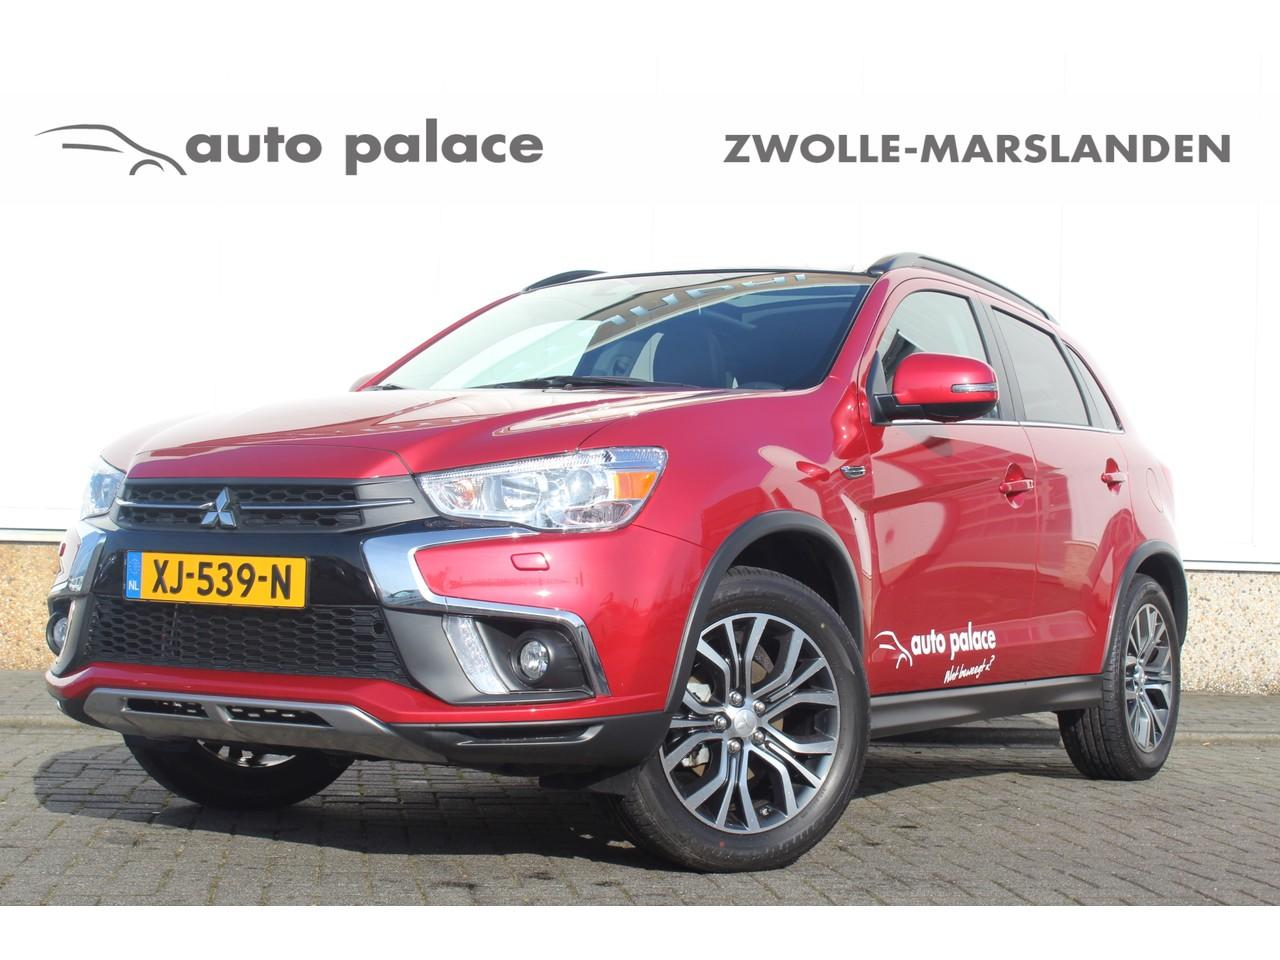 Mitsubishi Asx 1.6 mivec cleartec 117pk instyle